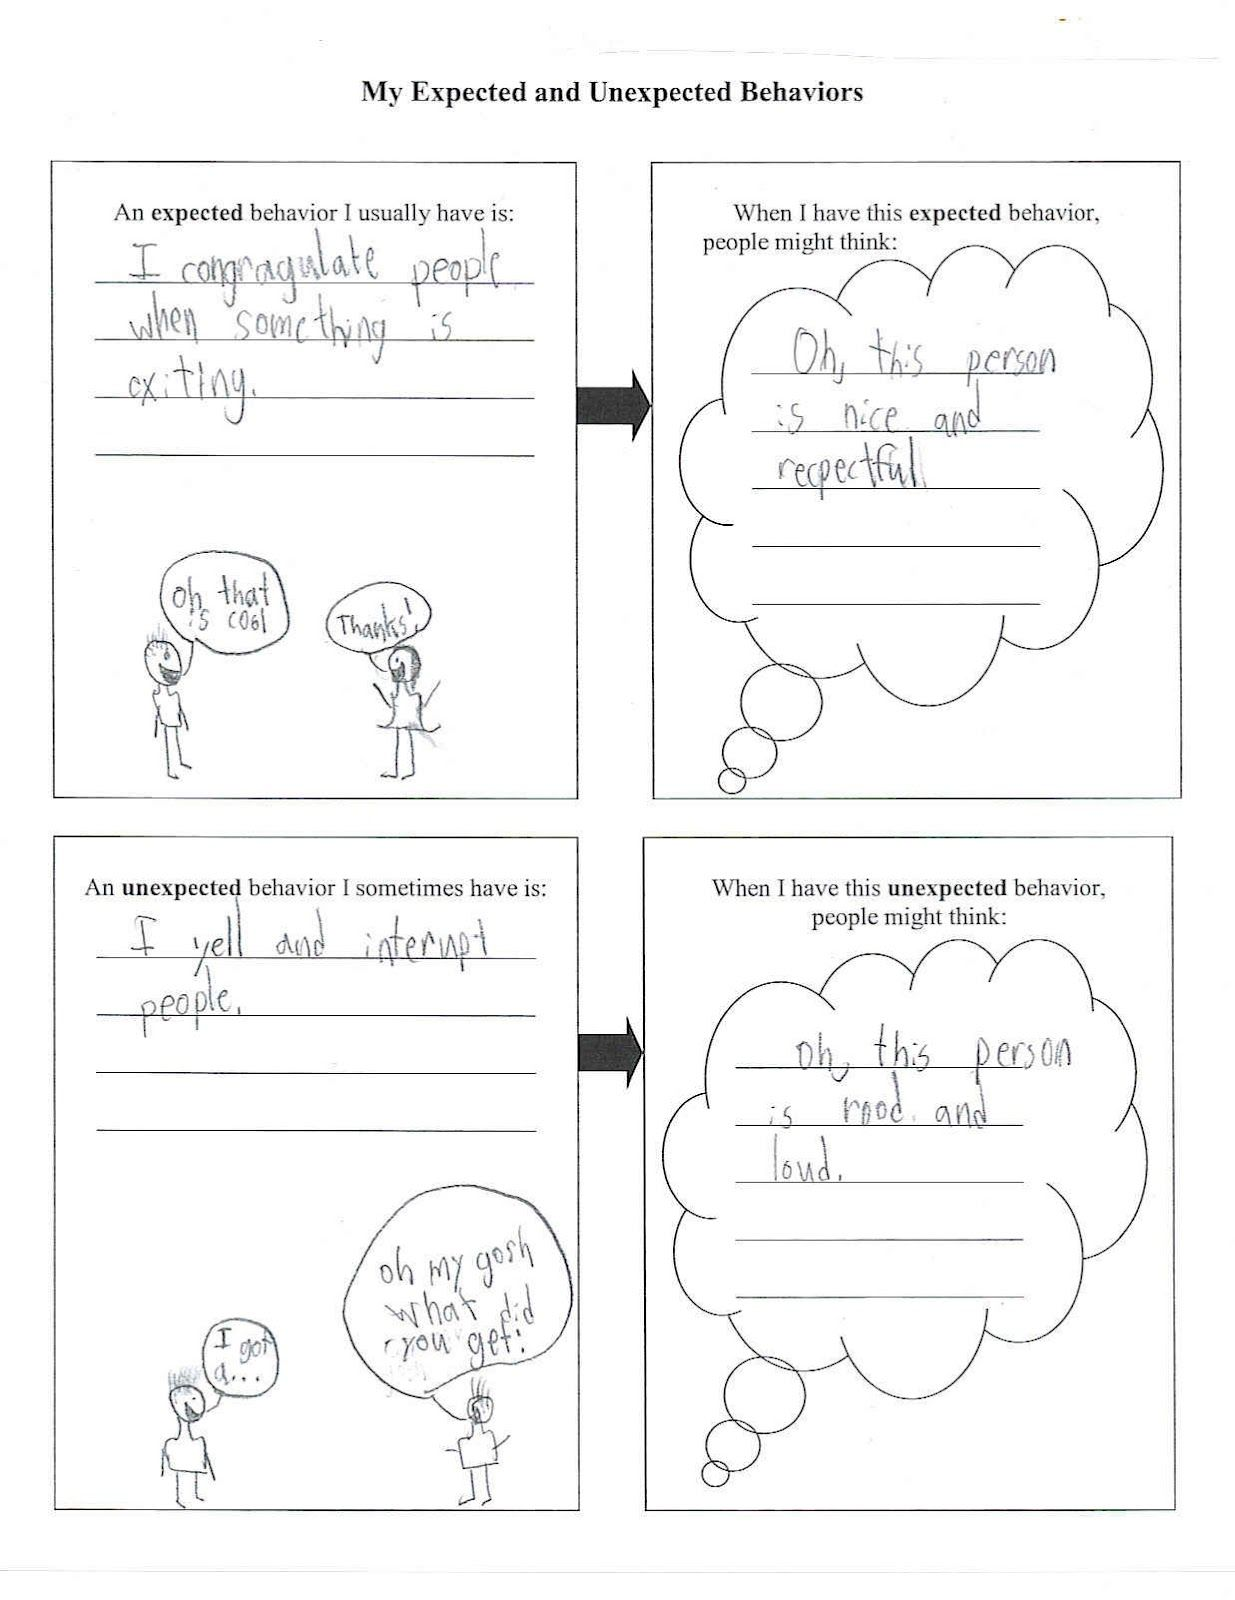 worksheet Expected And Unexpected Behaviors Worksheet third graders are delving more deeply into understanding how their behaviors affect others think and feel about them we all